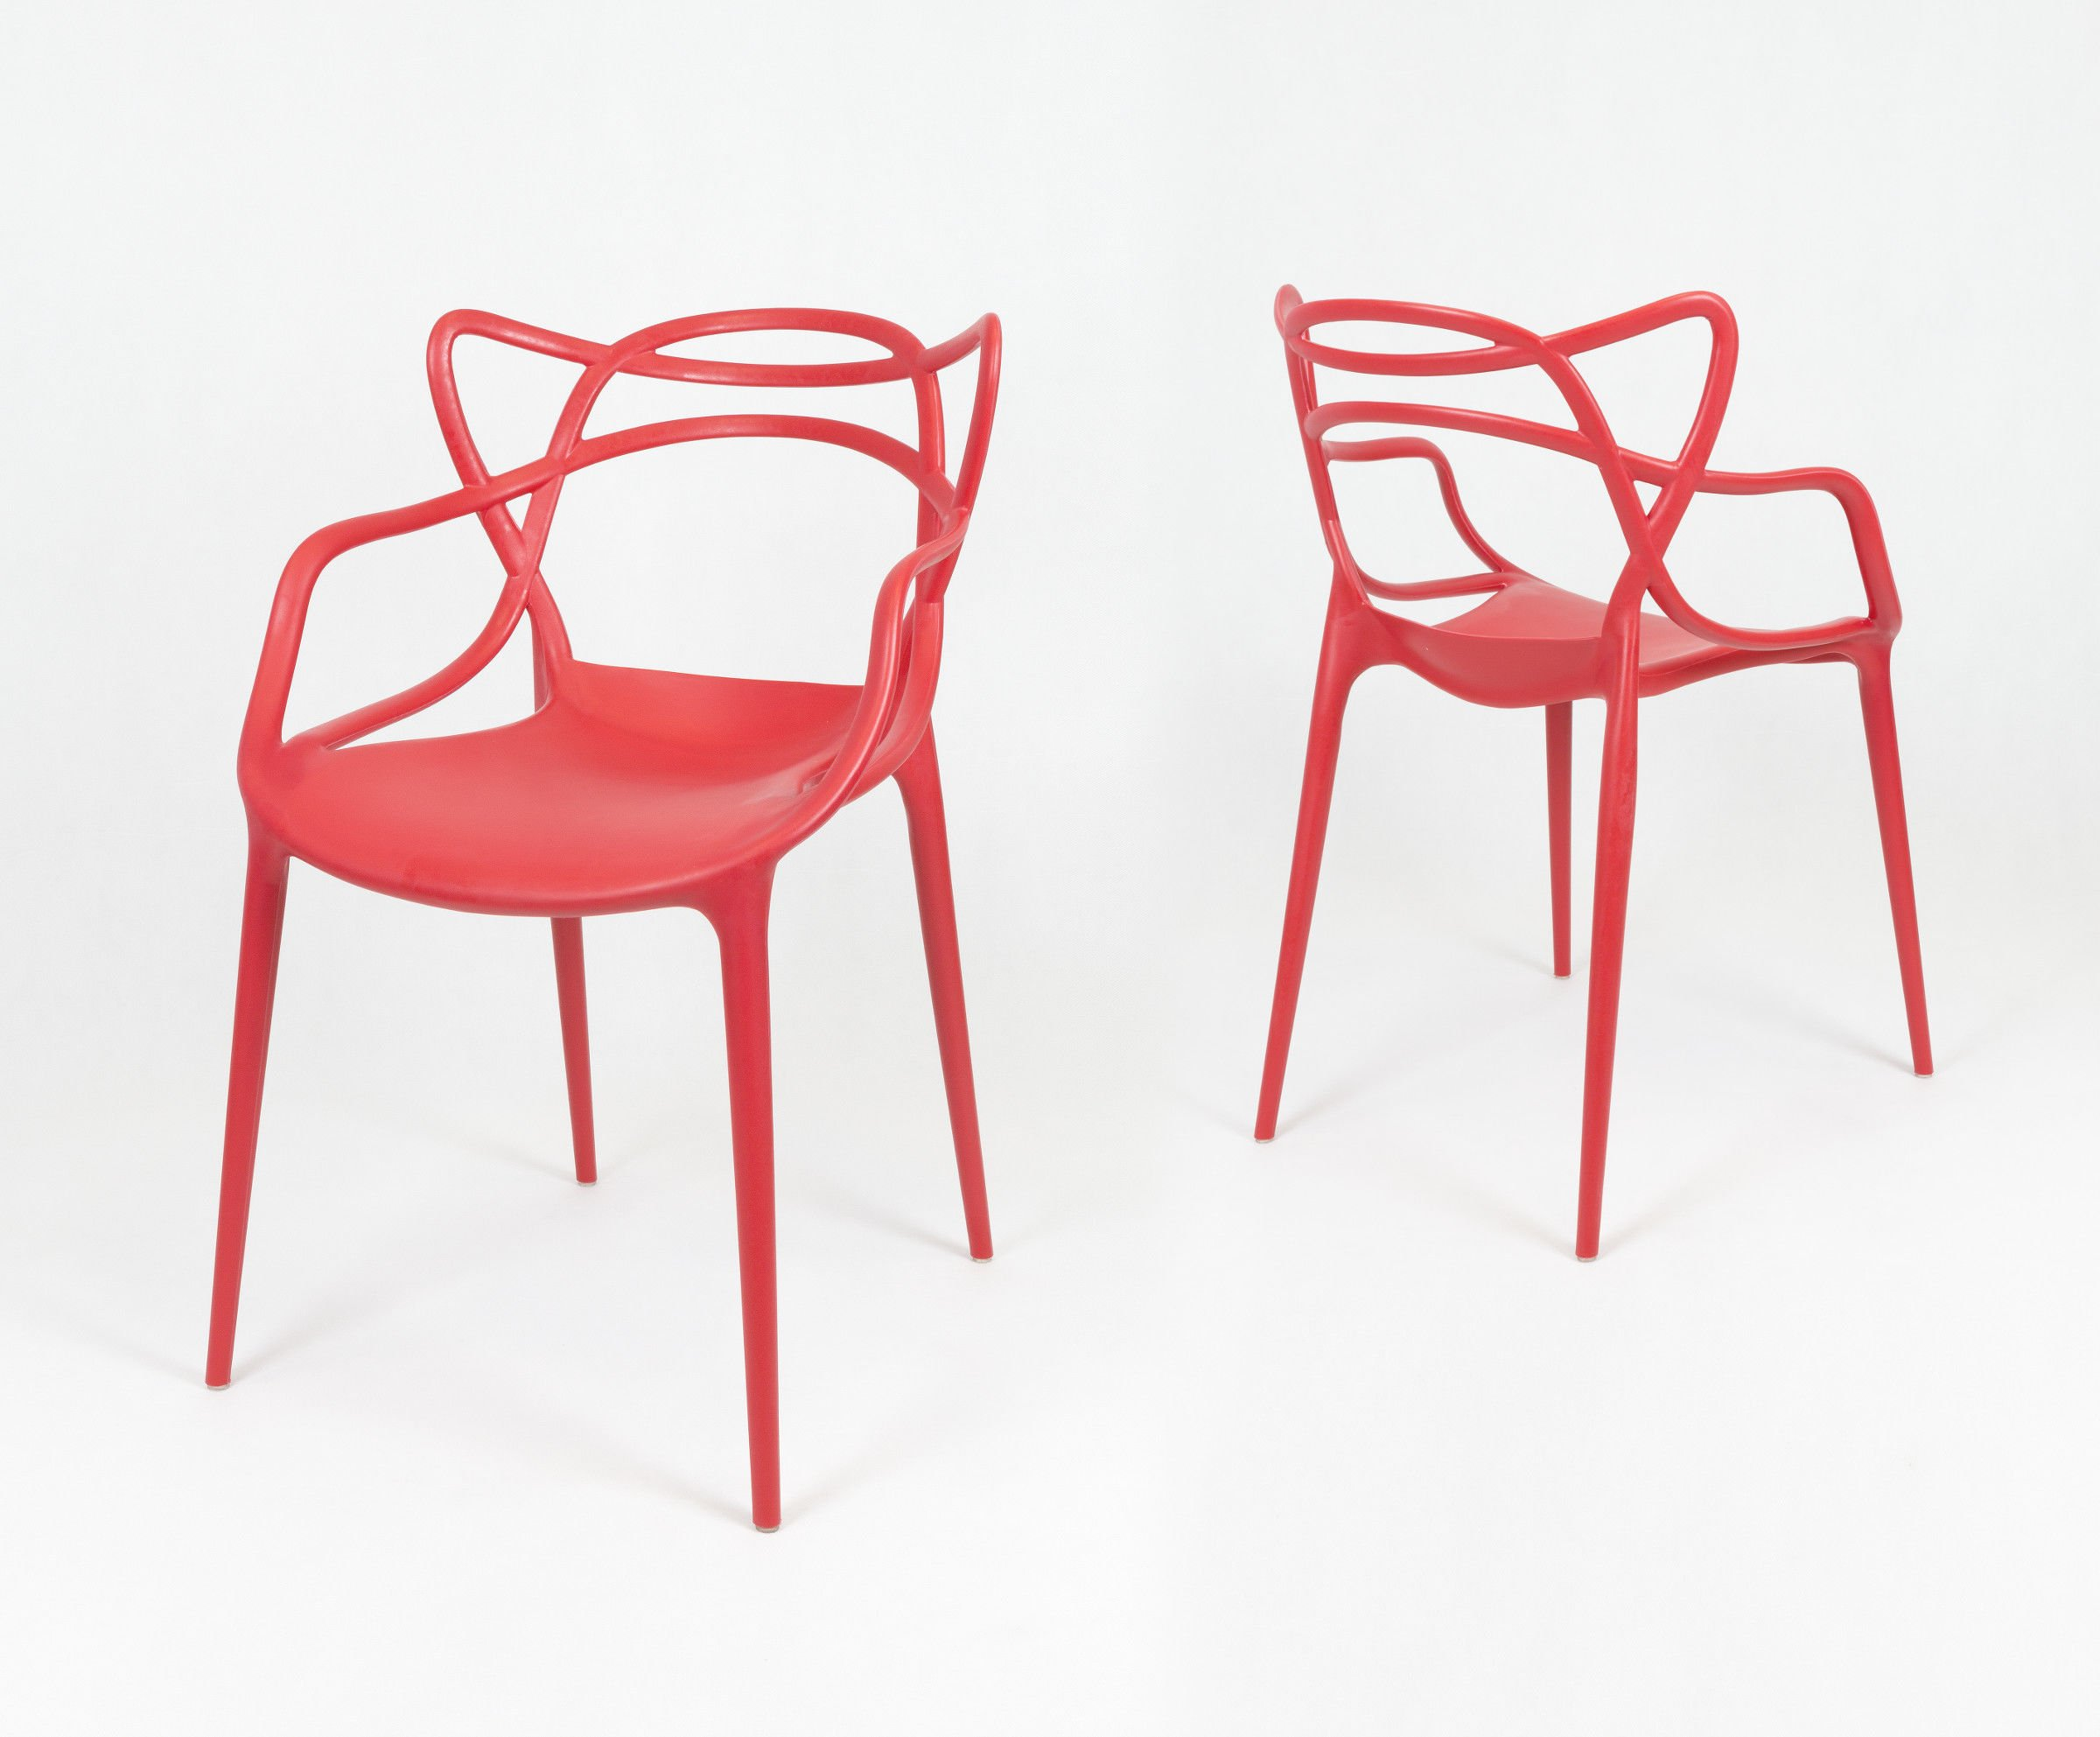 SK DESIGN KR013 RED CHAIR Red